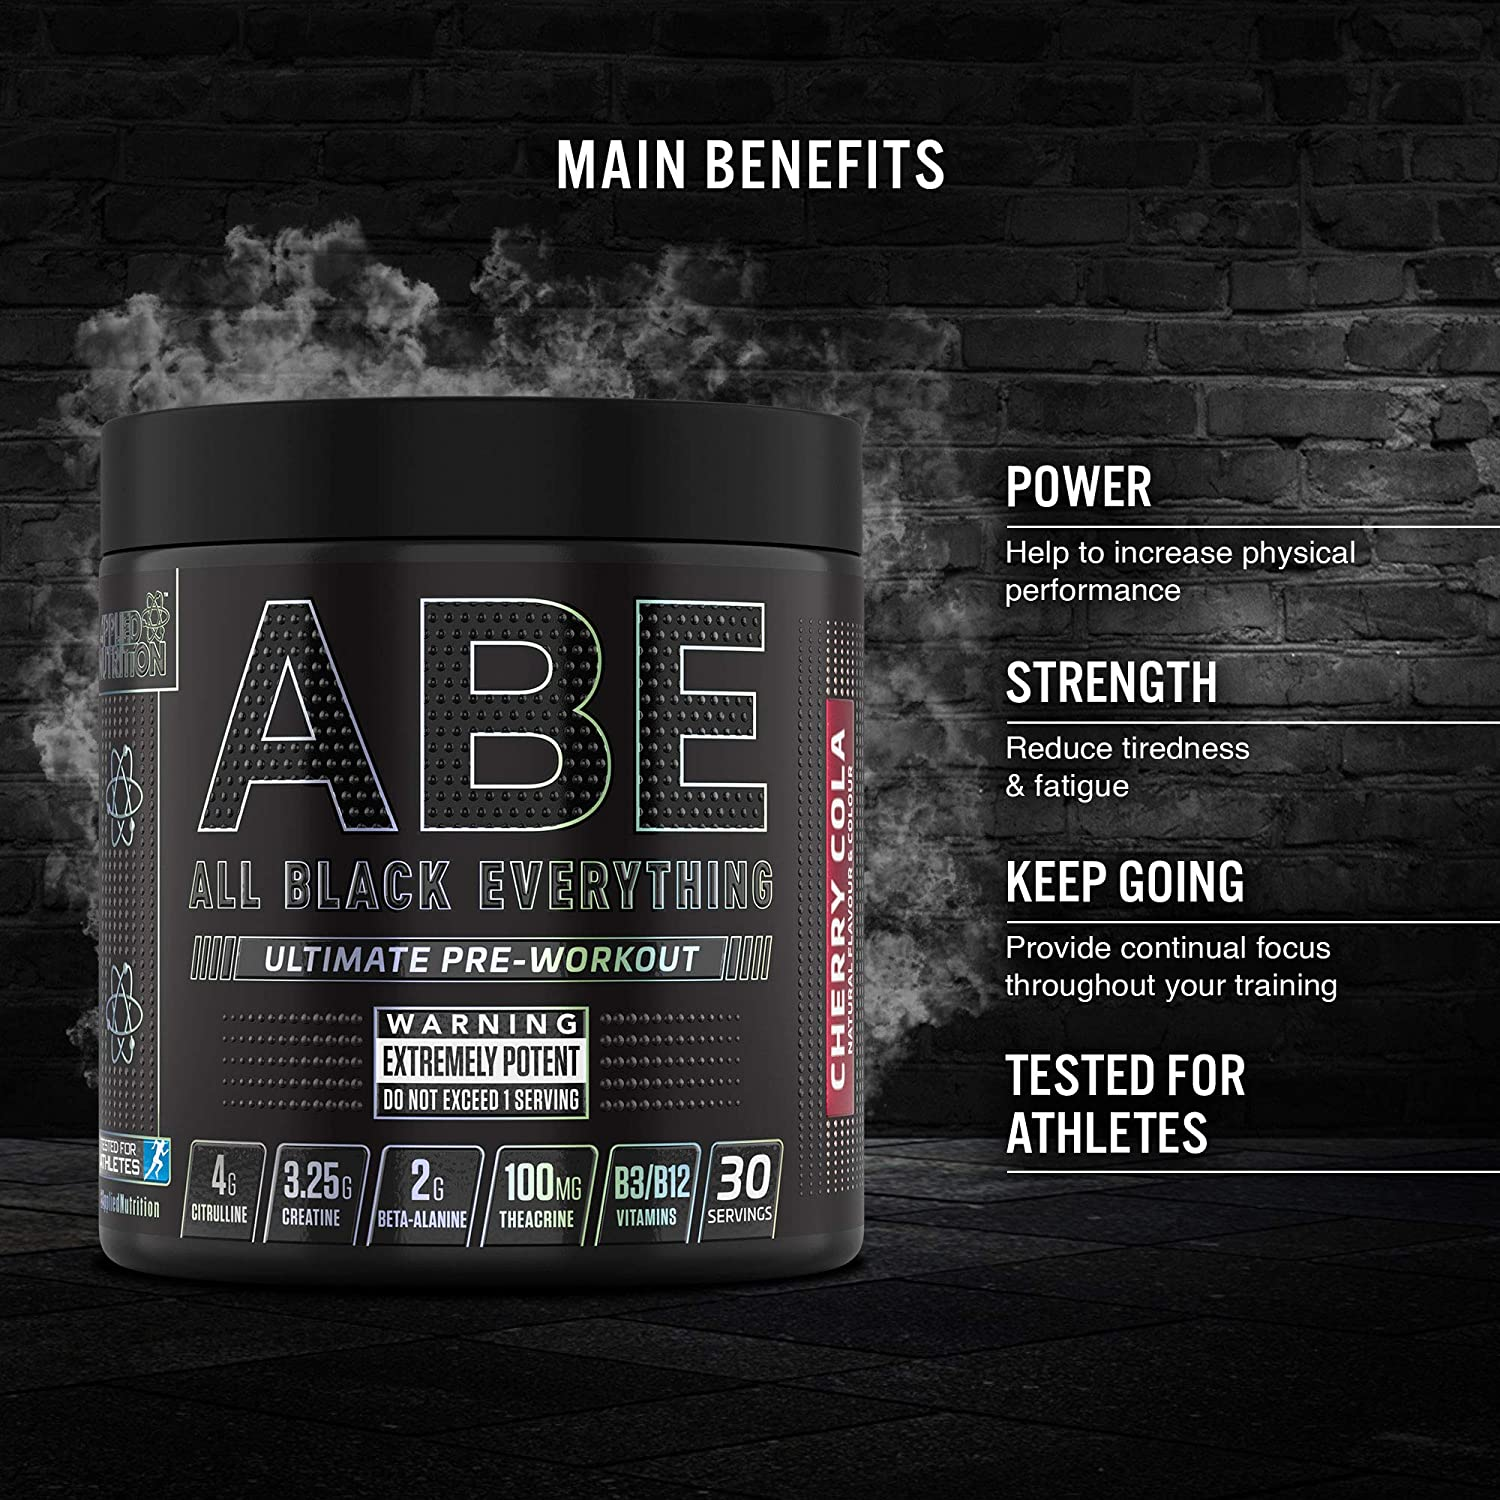 Applied Nutrition ABE - All Black Everything Pre Workout Energy Increase Physical Performance with Citrulline Creatine Beta Alanine Caffeine Vitamin B Complex 315g 30 Servings Candy Ice Blast